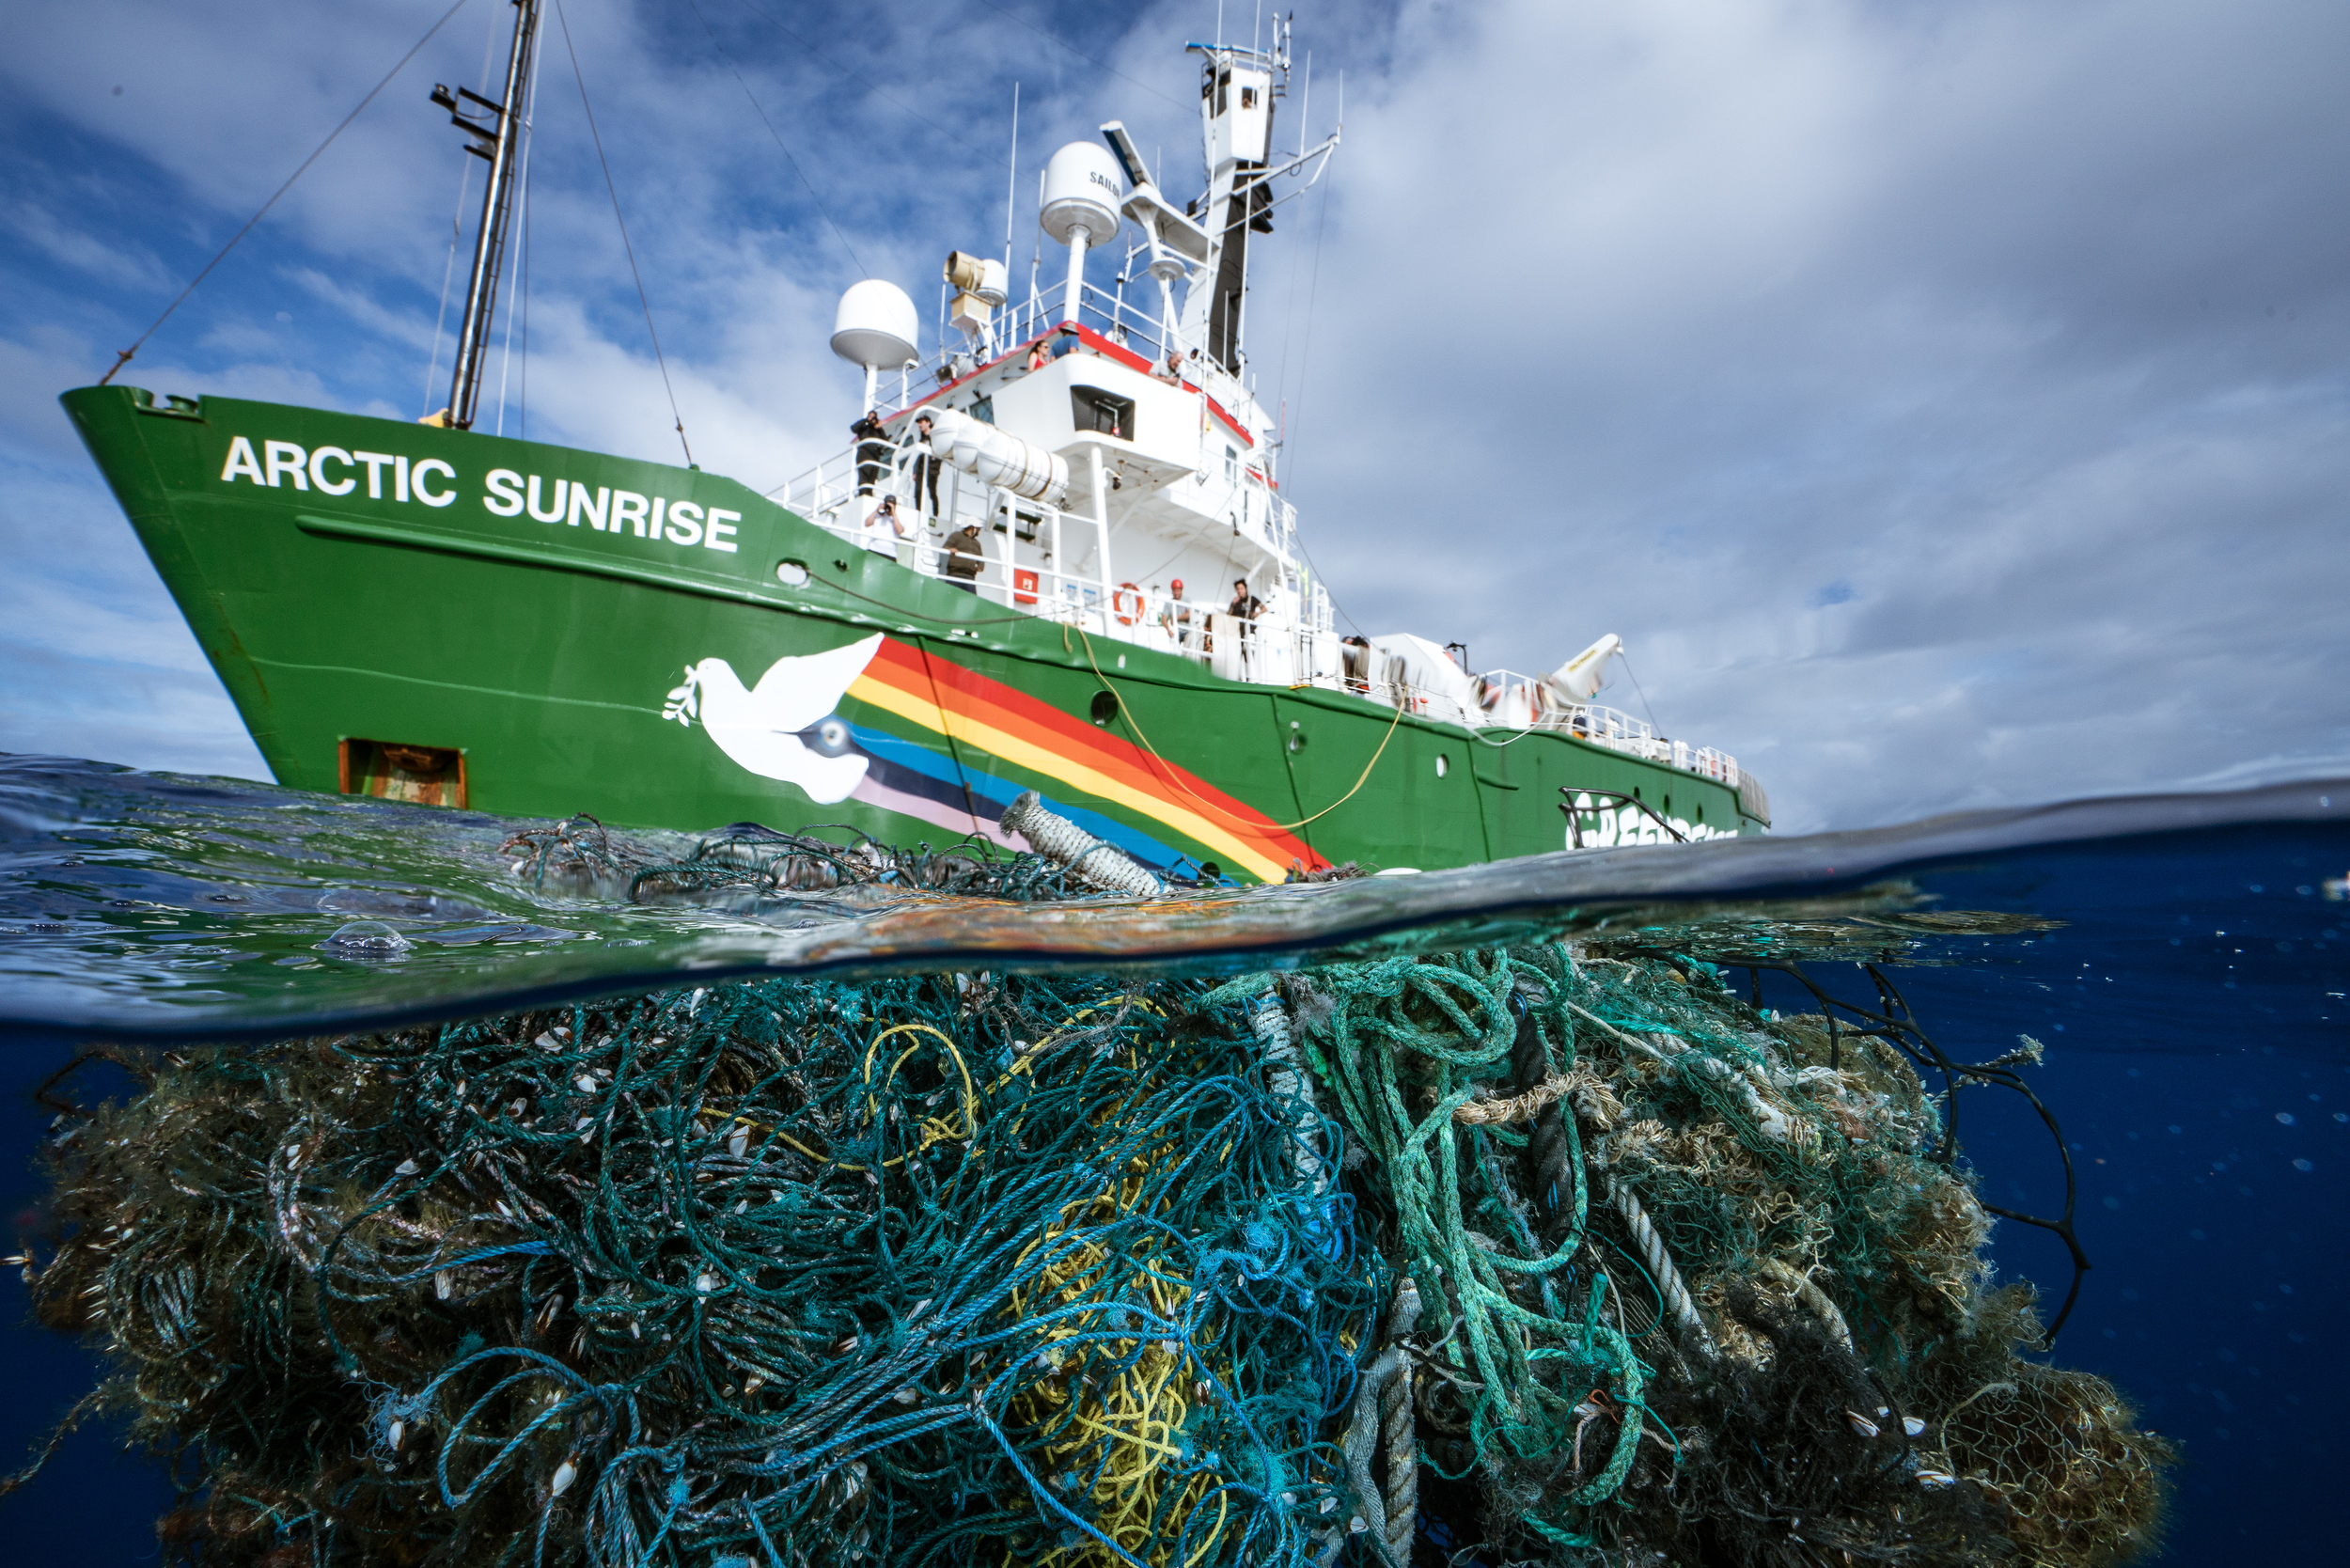 Debris from a fishing net seen underwater with MY Arctic Sunrise ship in background.